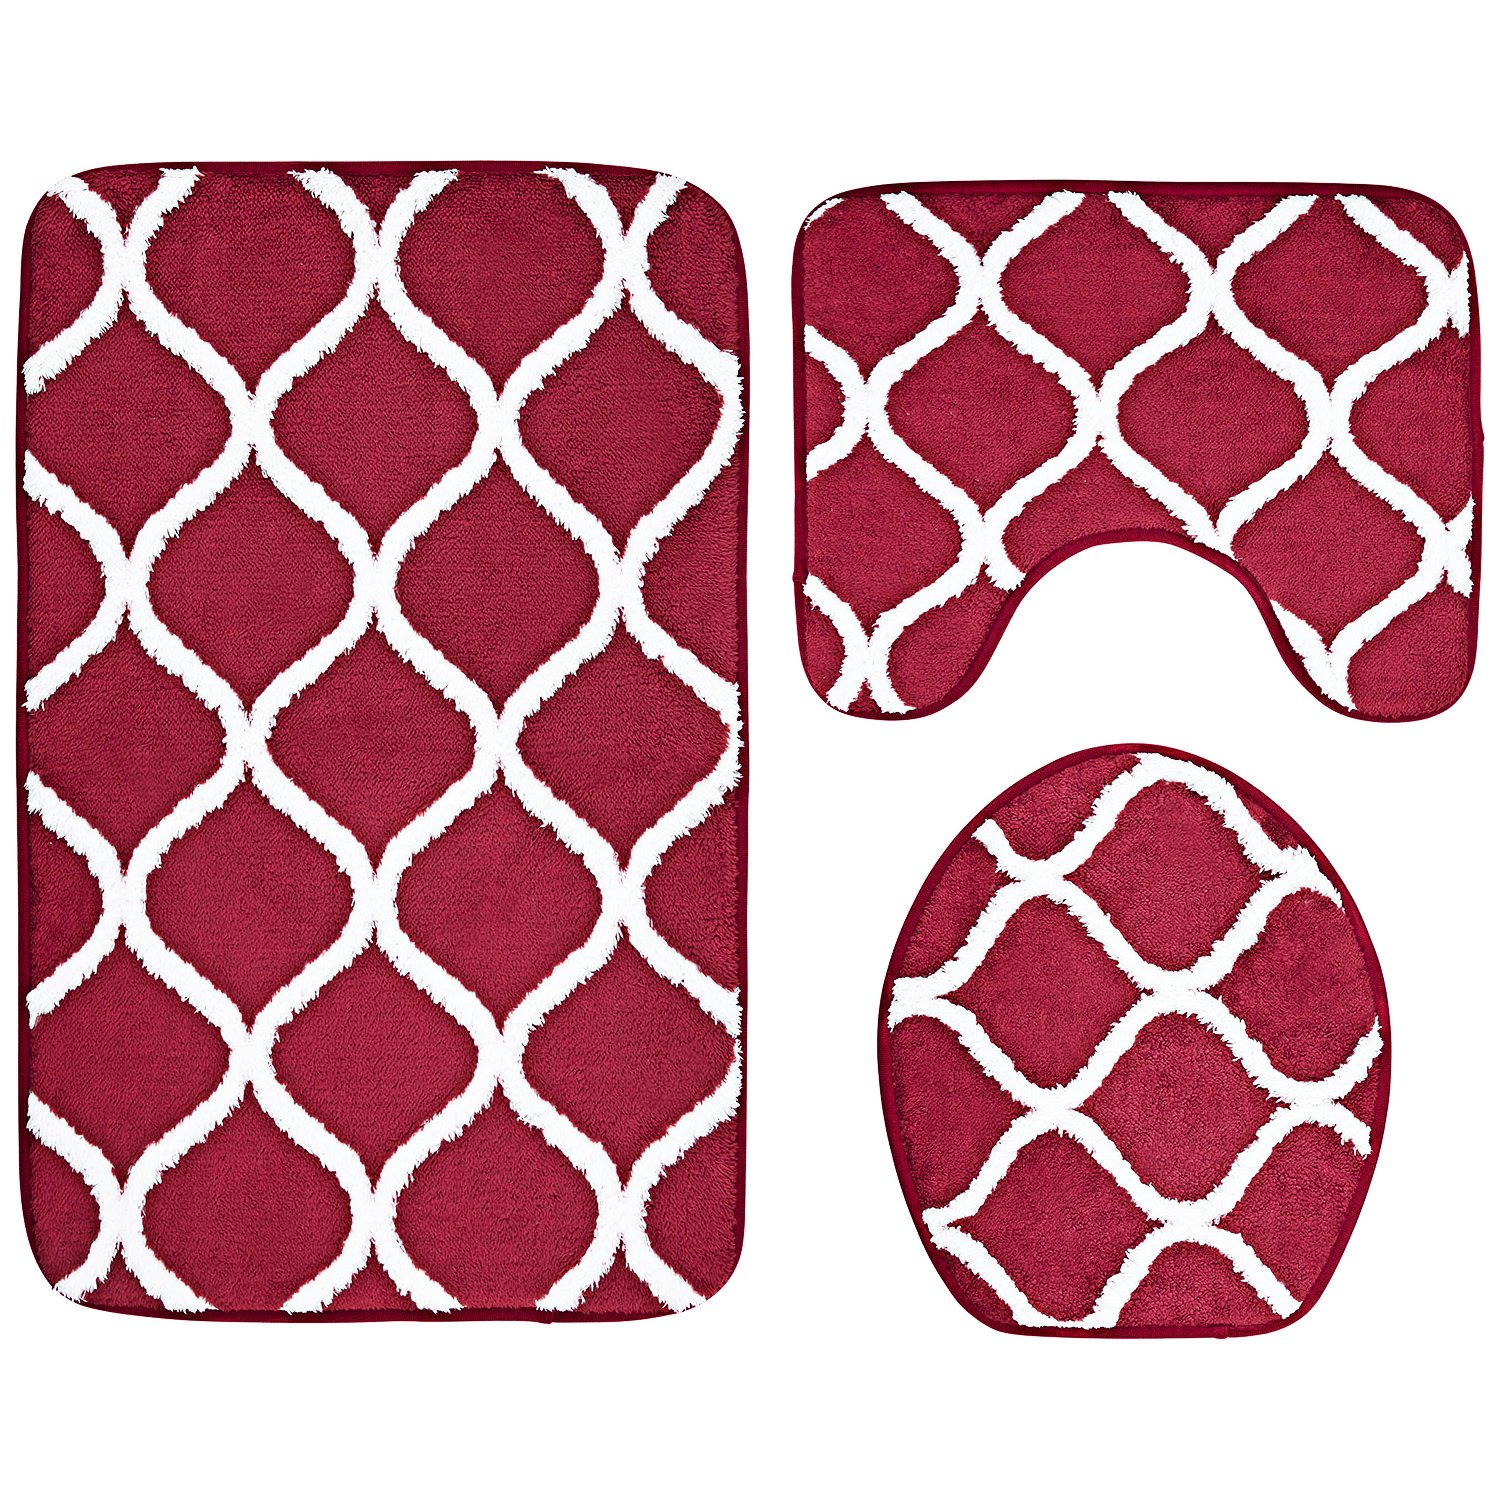 3-Piece Bathroom Mat Set, Extra Soft Memory Foam Combo - Rug, Contour Mat and Lid Cover (Red) Over the Floor